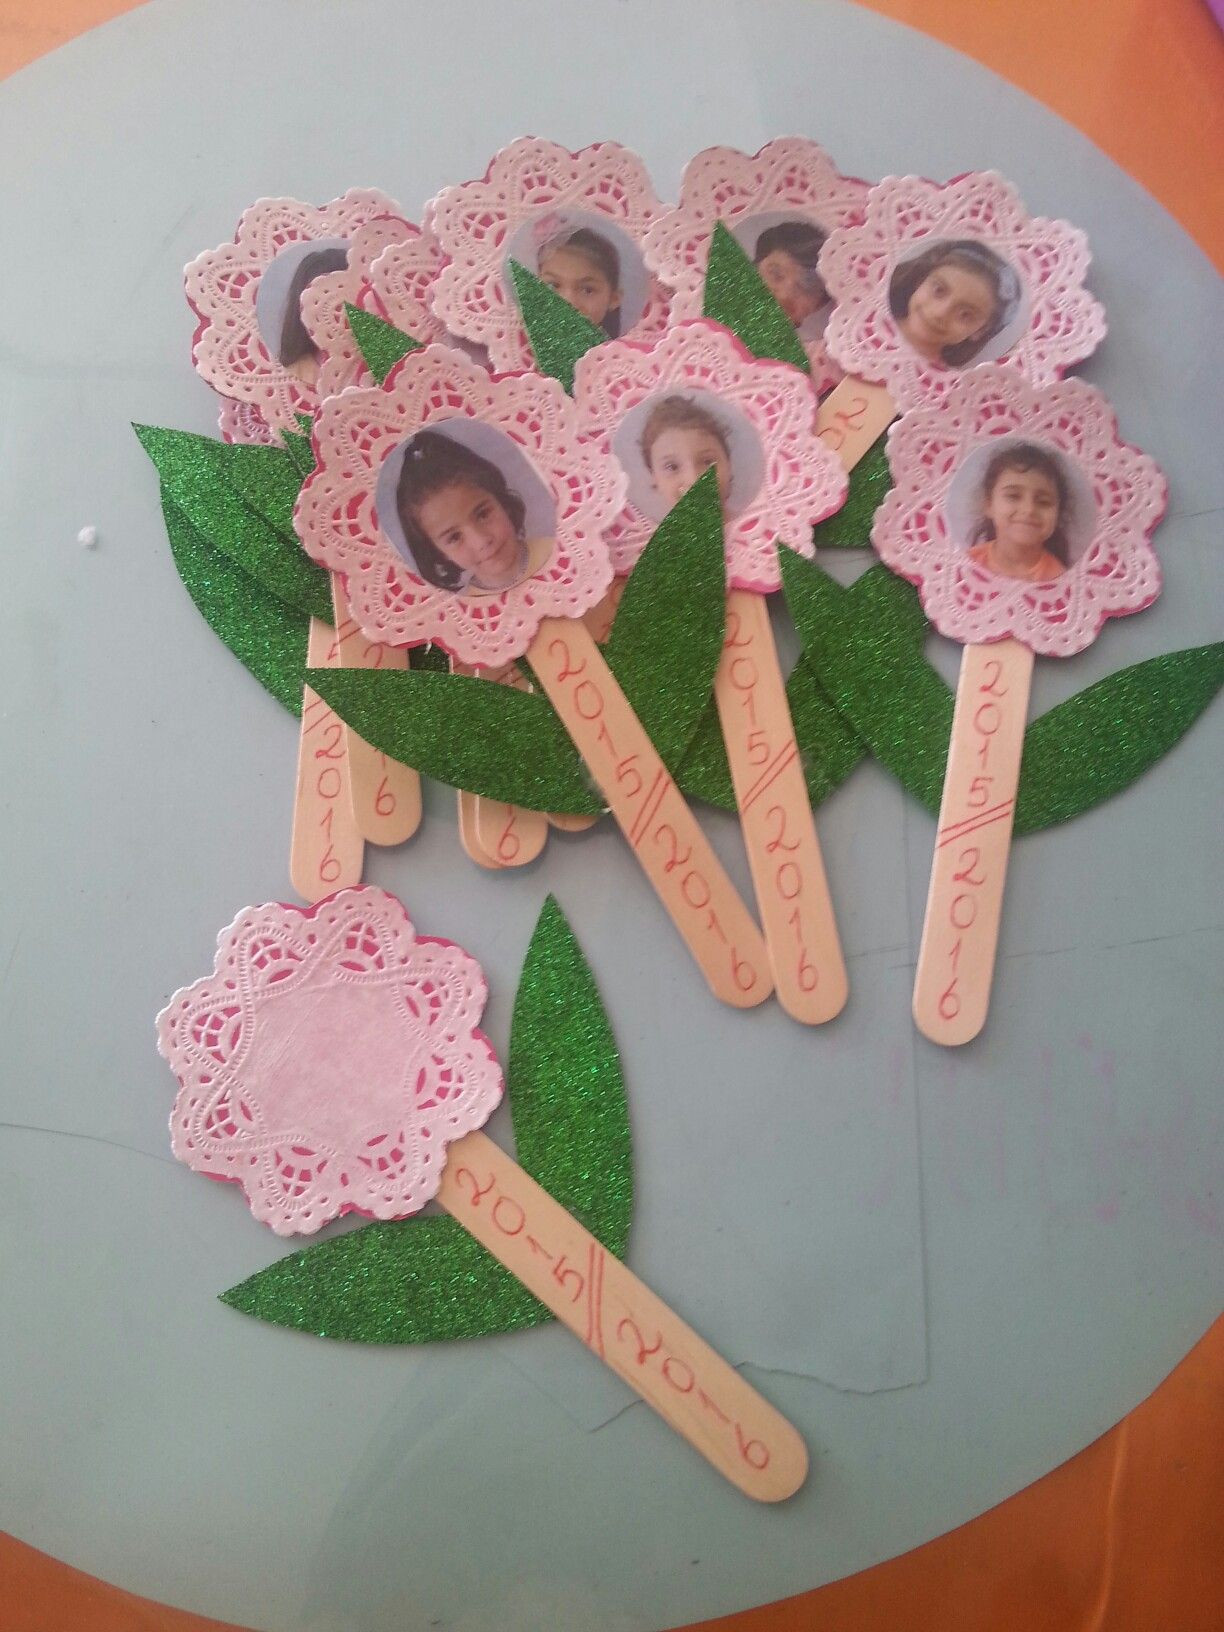 Mother Day Craft Ideas For Kids To Make  10 Marvellous Mother s Day Crafts For Kids That They ll